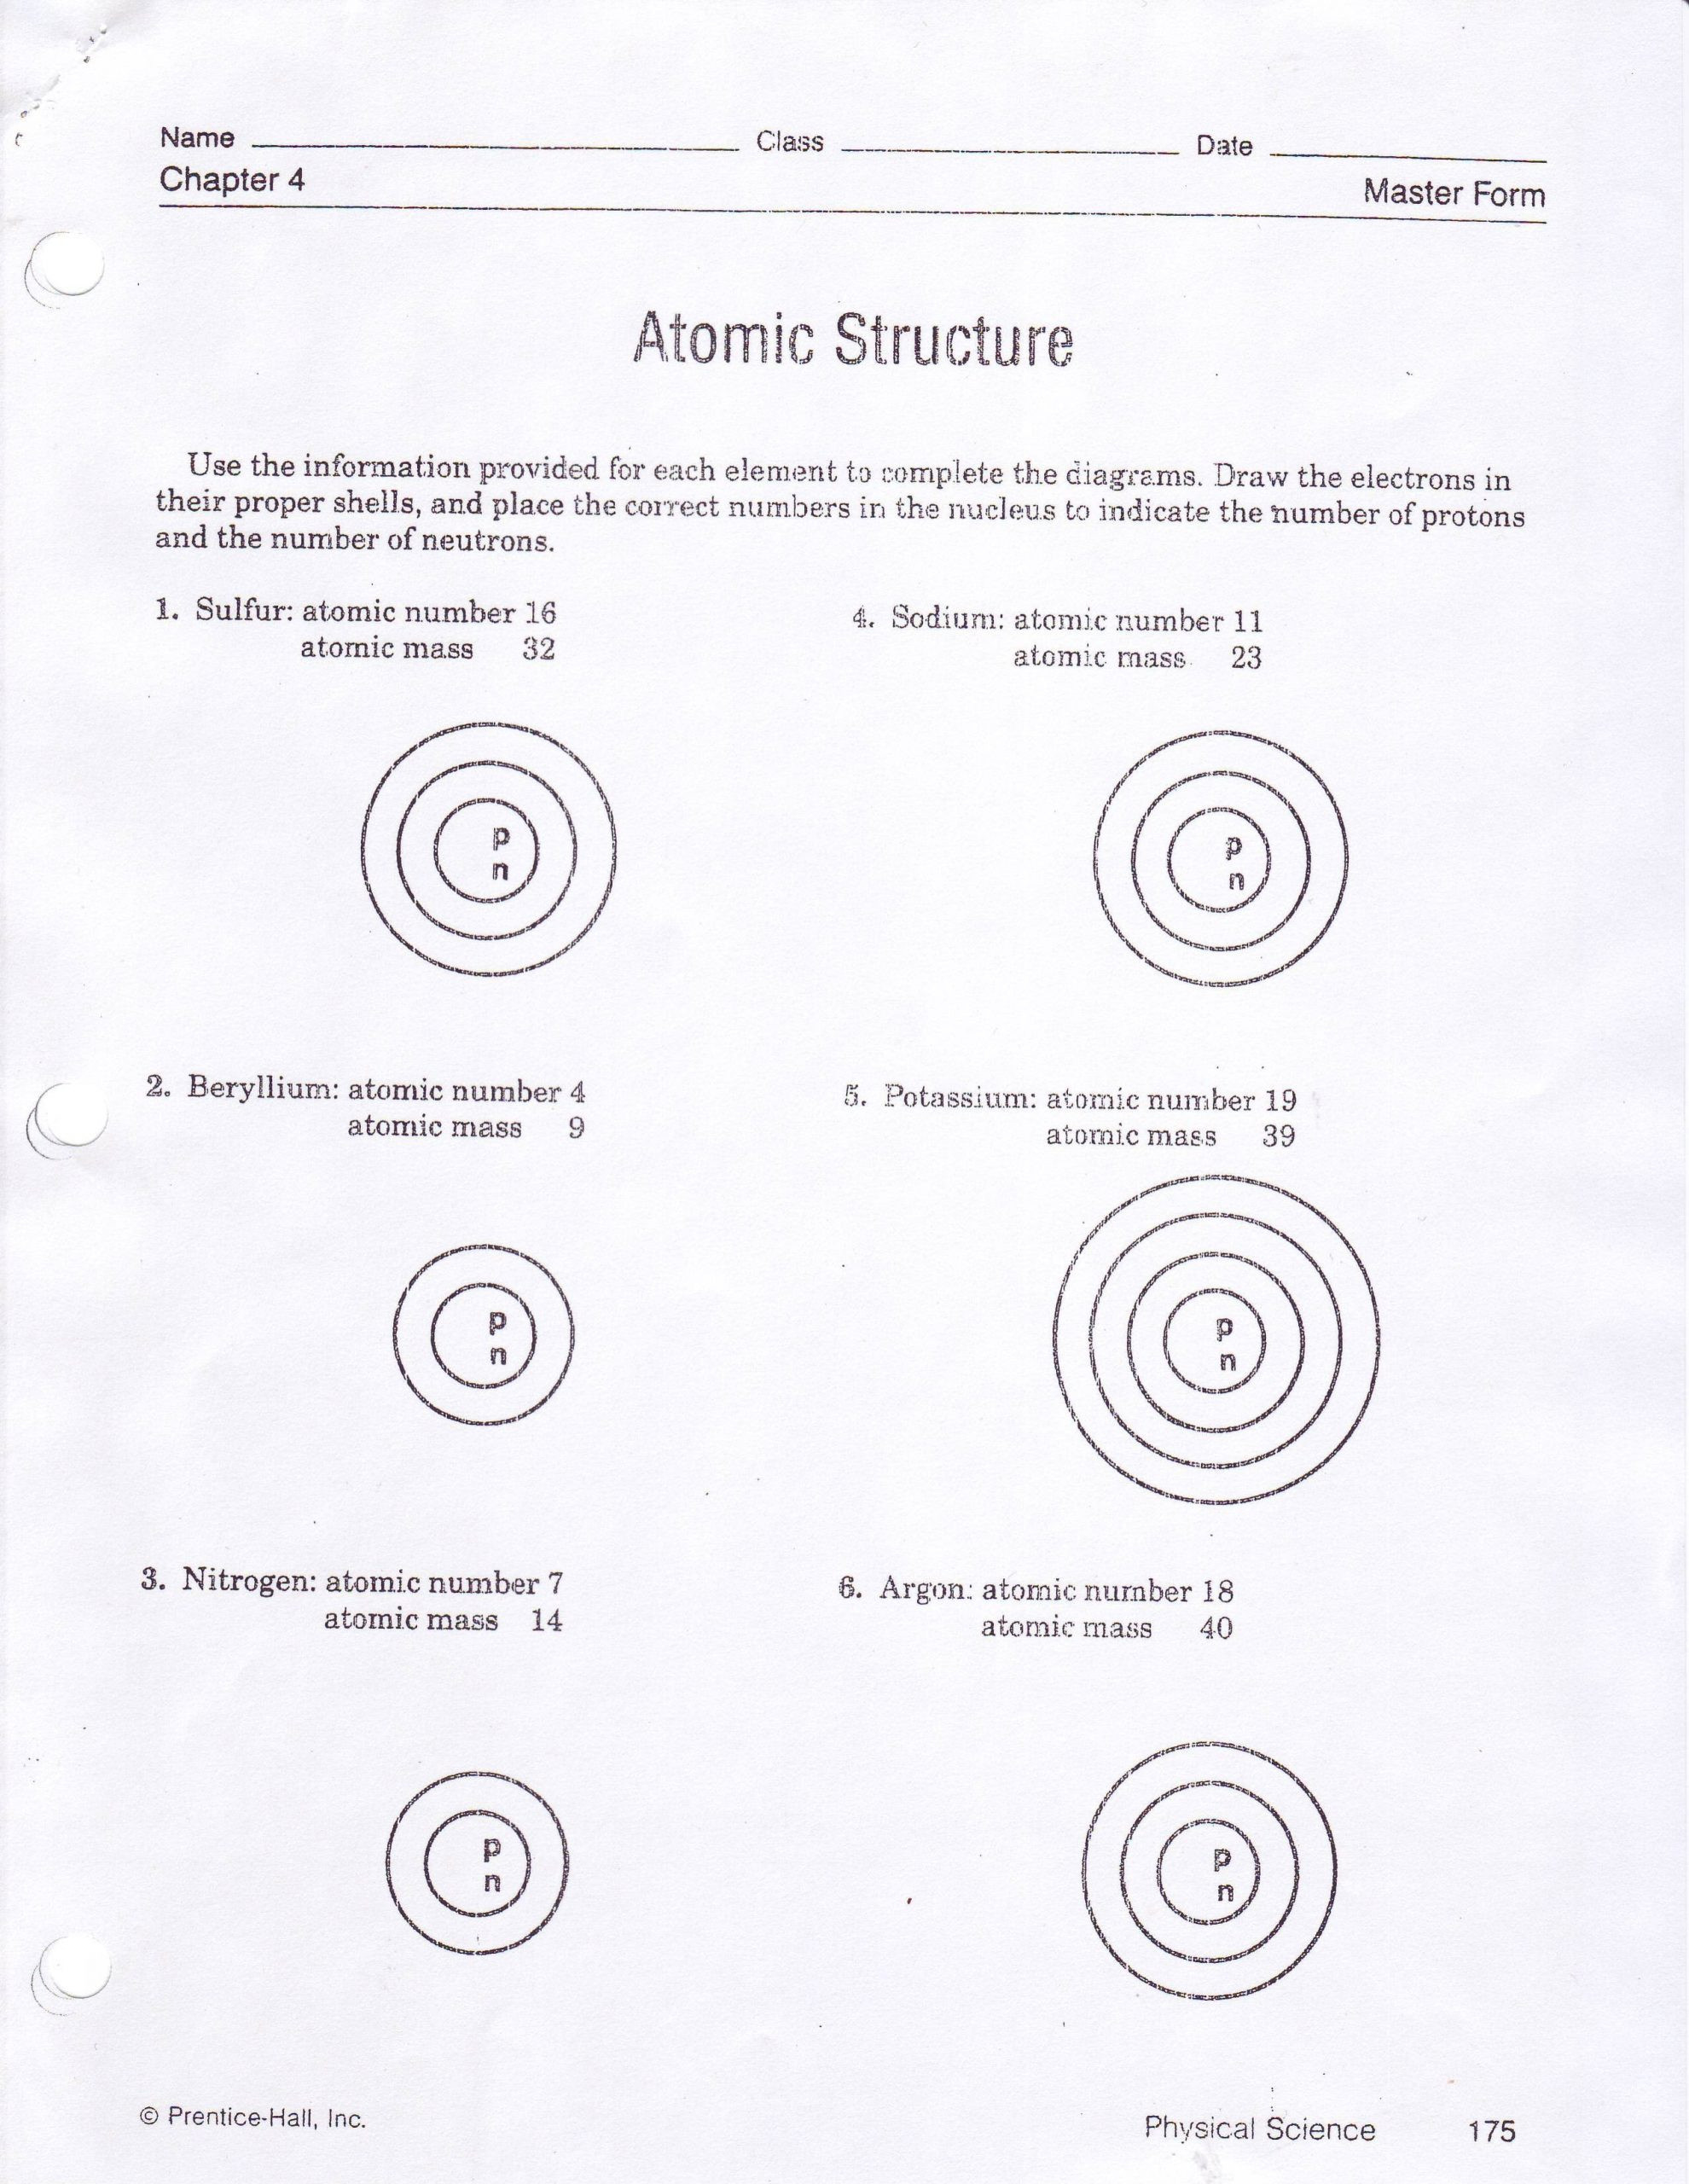 Atomic Structure Worksheet Answers Key Worksheets 42 astonishing atomic Structure Worksheet